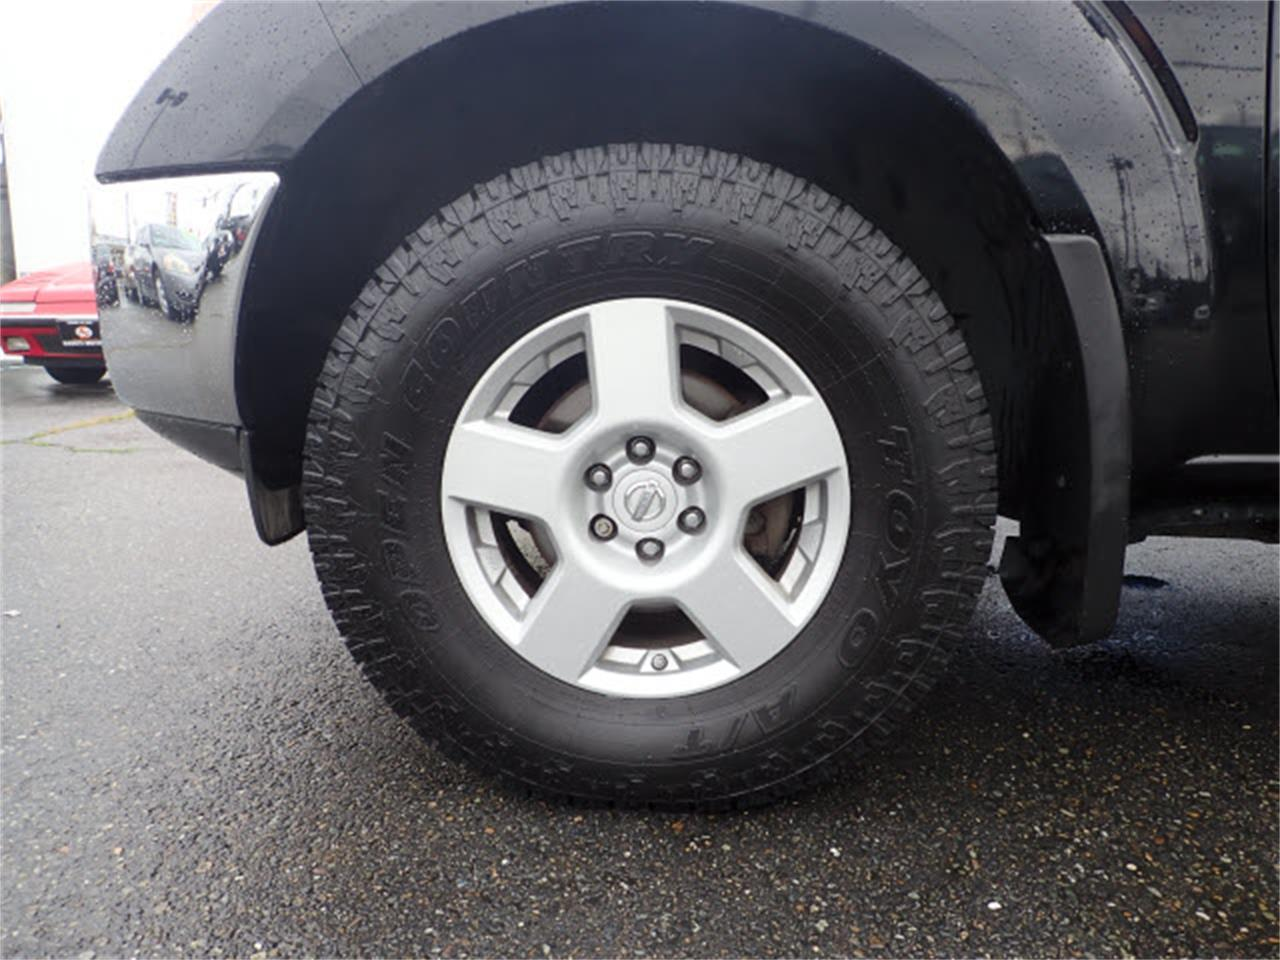 Large Picture of 2005 Frontier - $9,990.00 Offered by Sabeti Motors - PX5J